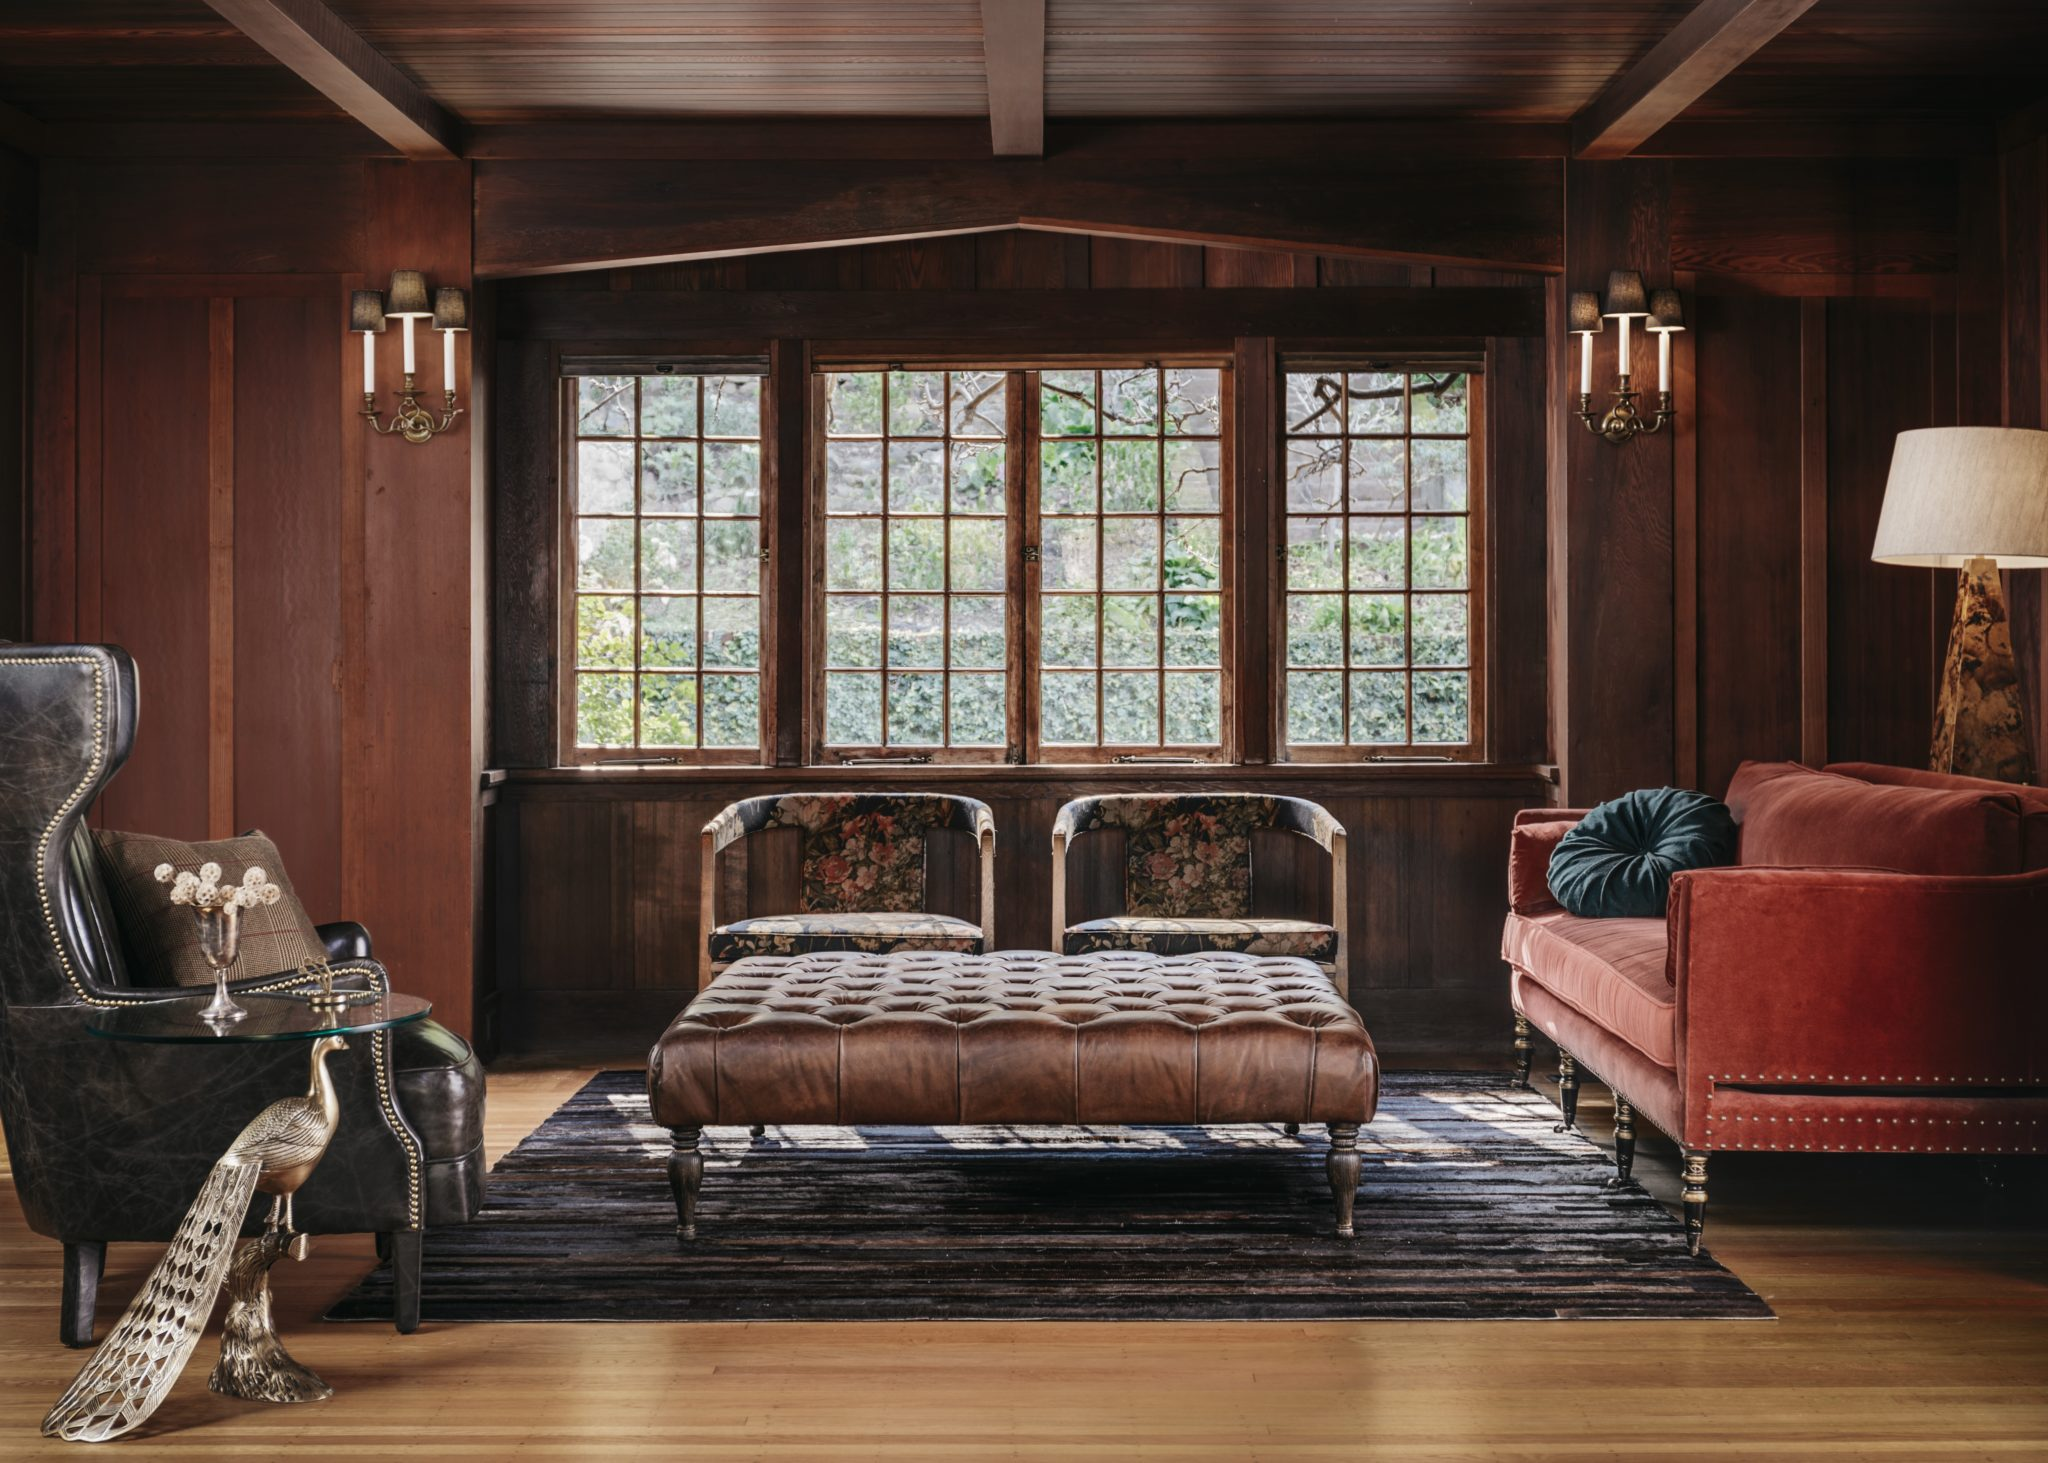 Inspired by classicEuropean designs, the library features wood paneling and sophisticated furnishings, including a regency-style sofa from Coup D'Etat, upholstered in rust orange fabric from Pindler.